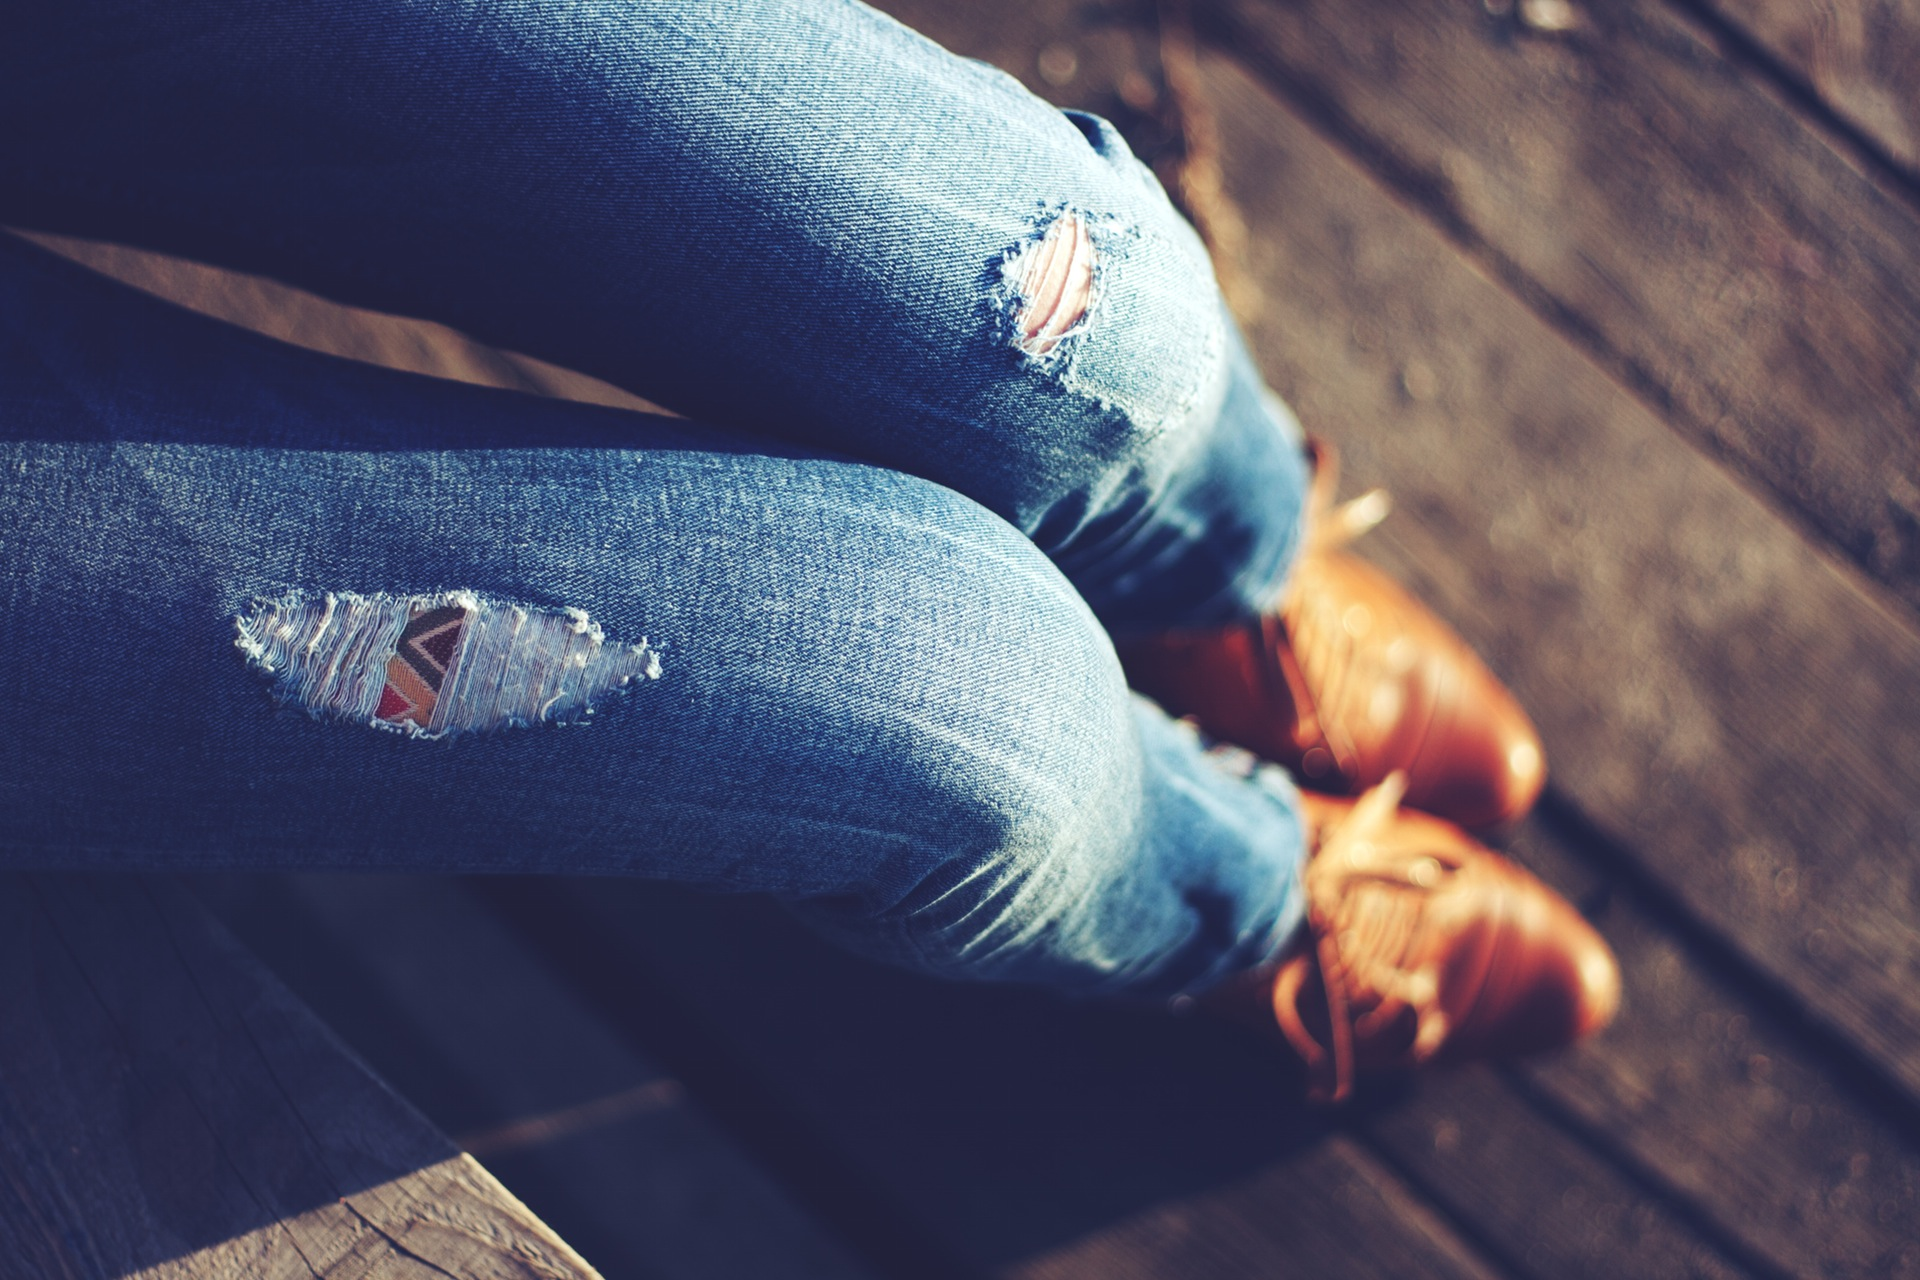 10 Hottest Rugged Jeans Styles That Are So Fashionably Ripped!